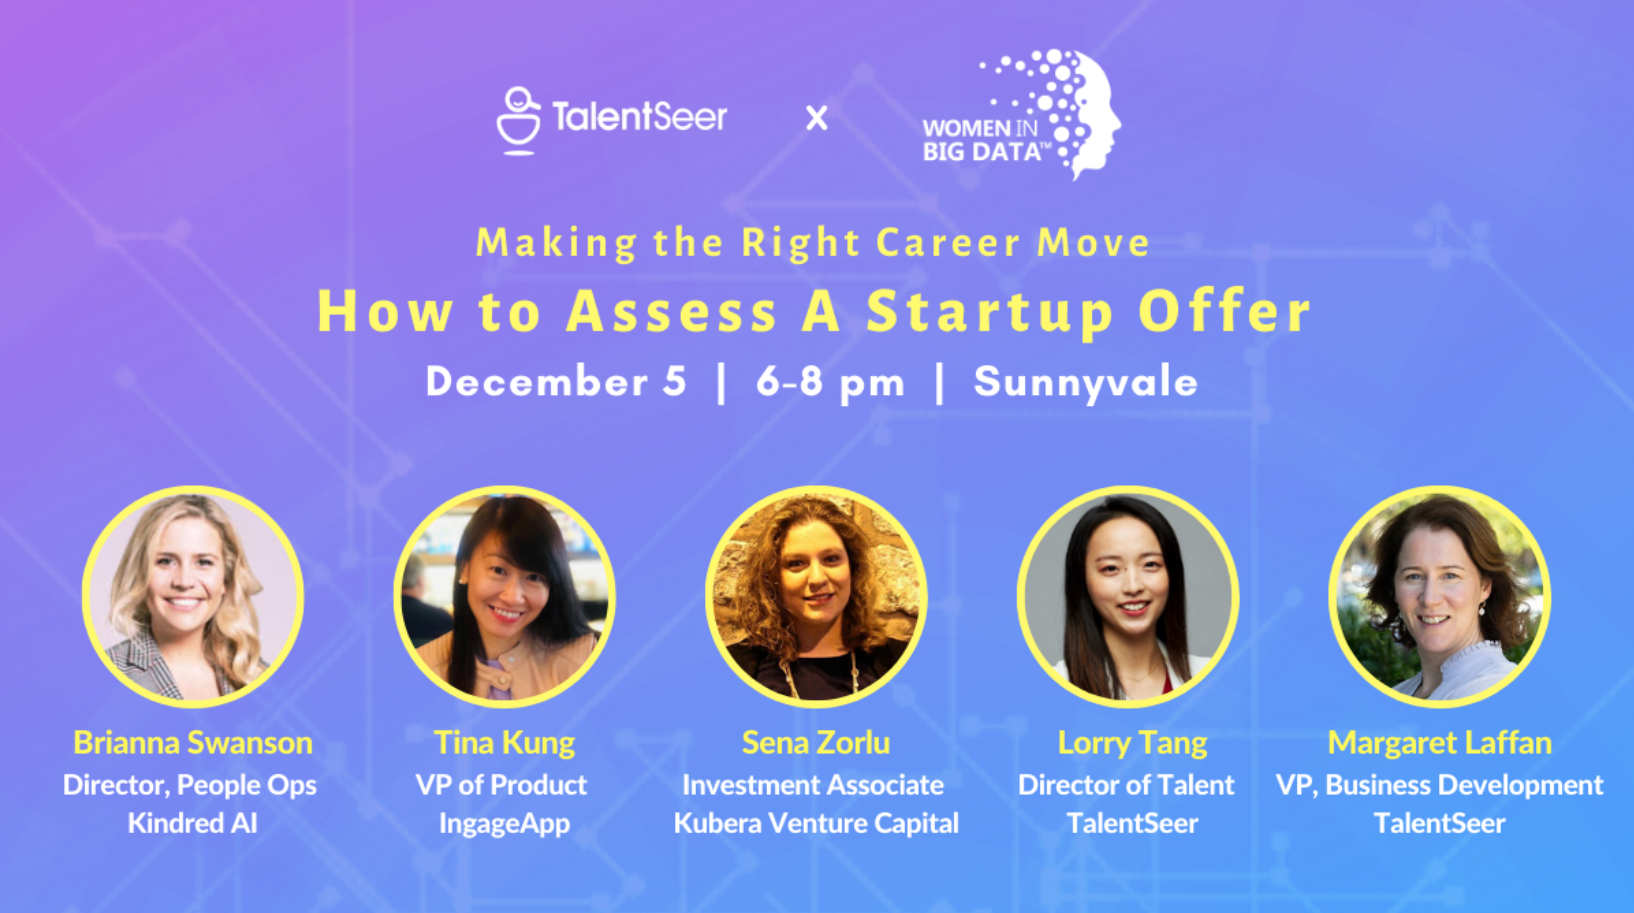 TalentSeer x WiBD meetup: How to access a start-up offer - Diversity in AI & Big Data